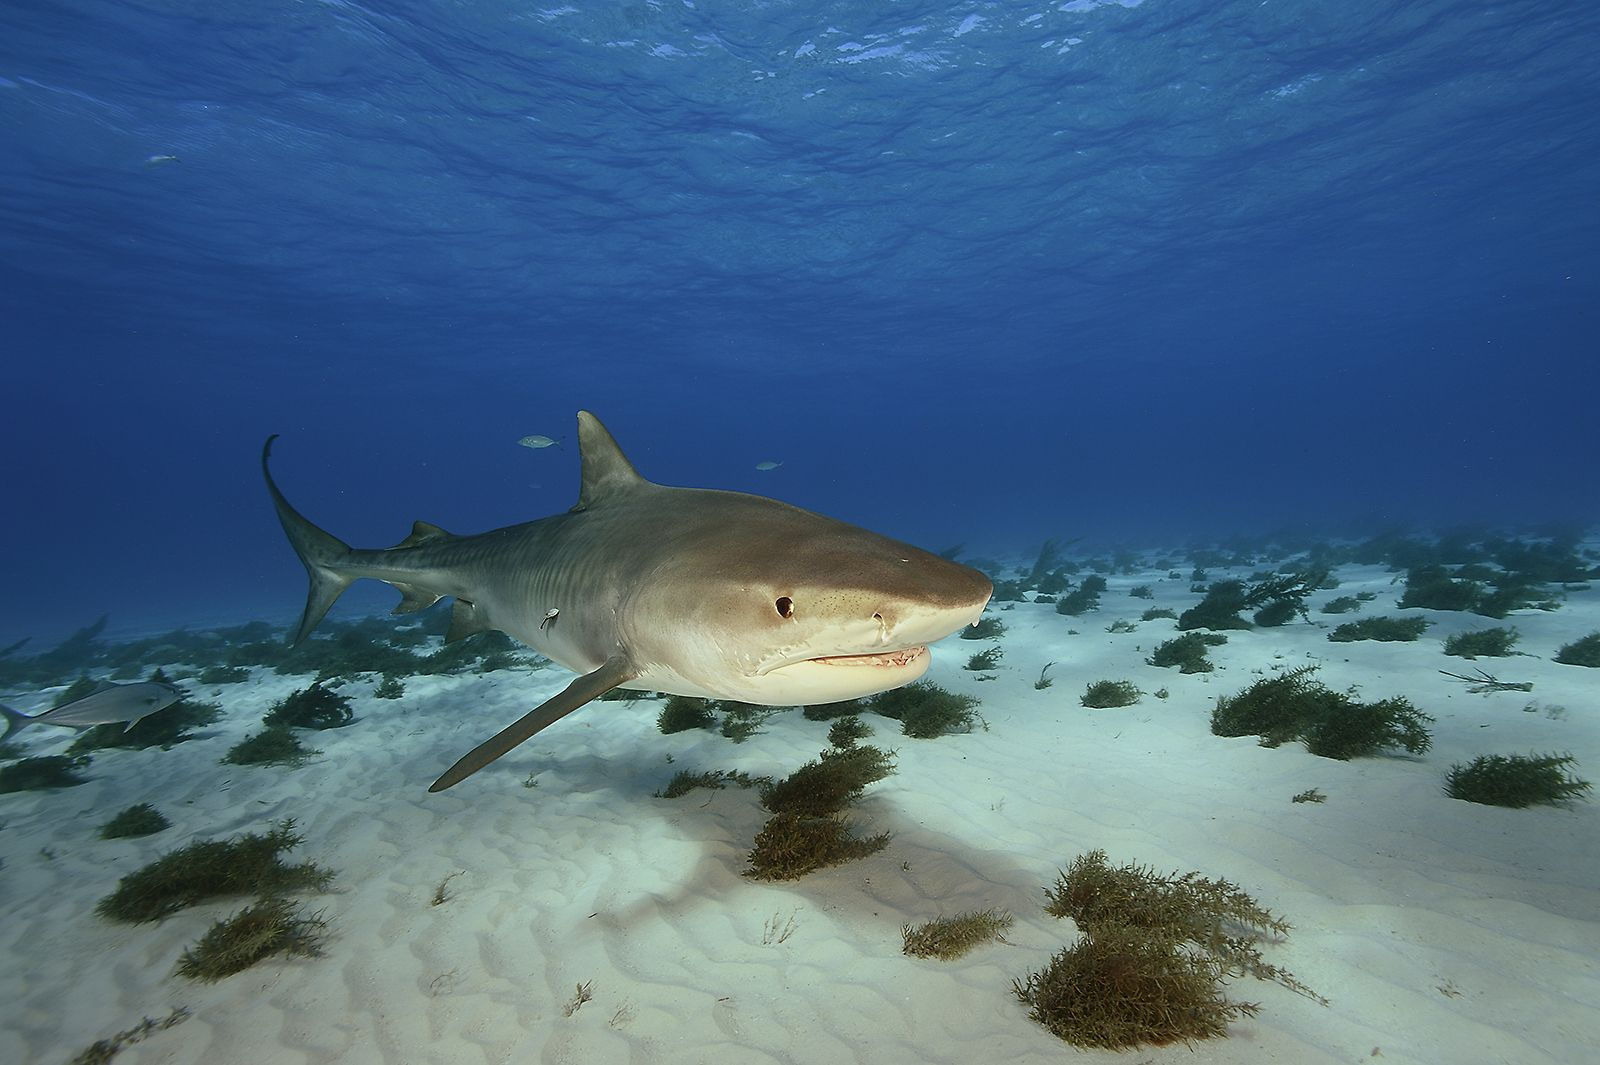 Tiger Shark at close quarters, a ferocious hunter that will take any kind of prey